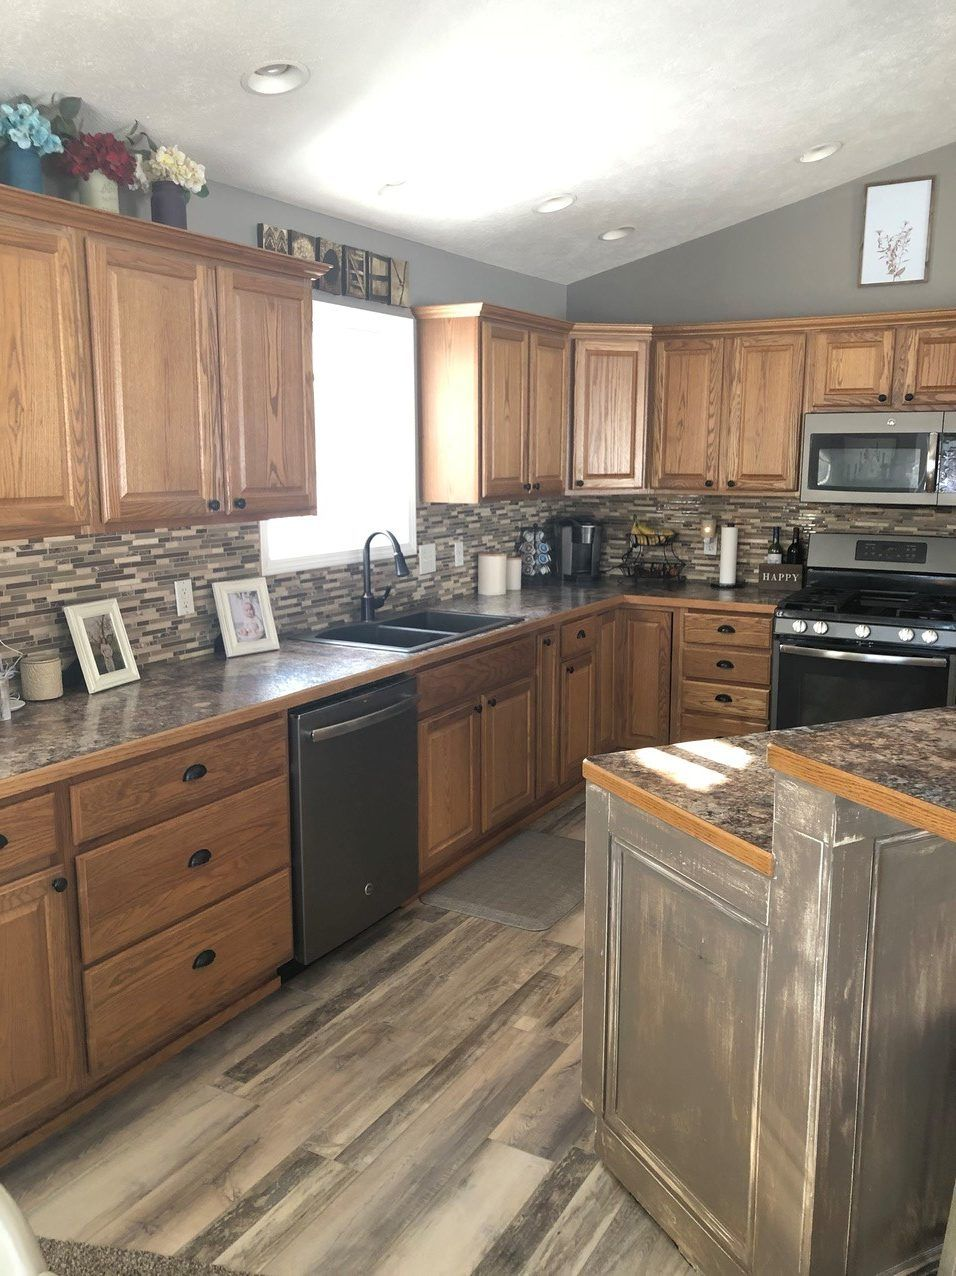 Should I Paint My Oak Cabinets Or Keep Them Stained A Questionnaire In 2020 Oak Cabinets Staining Cabinets Staining Oak Cabinets